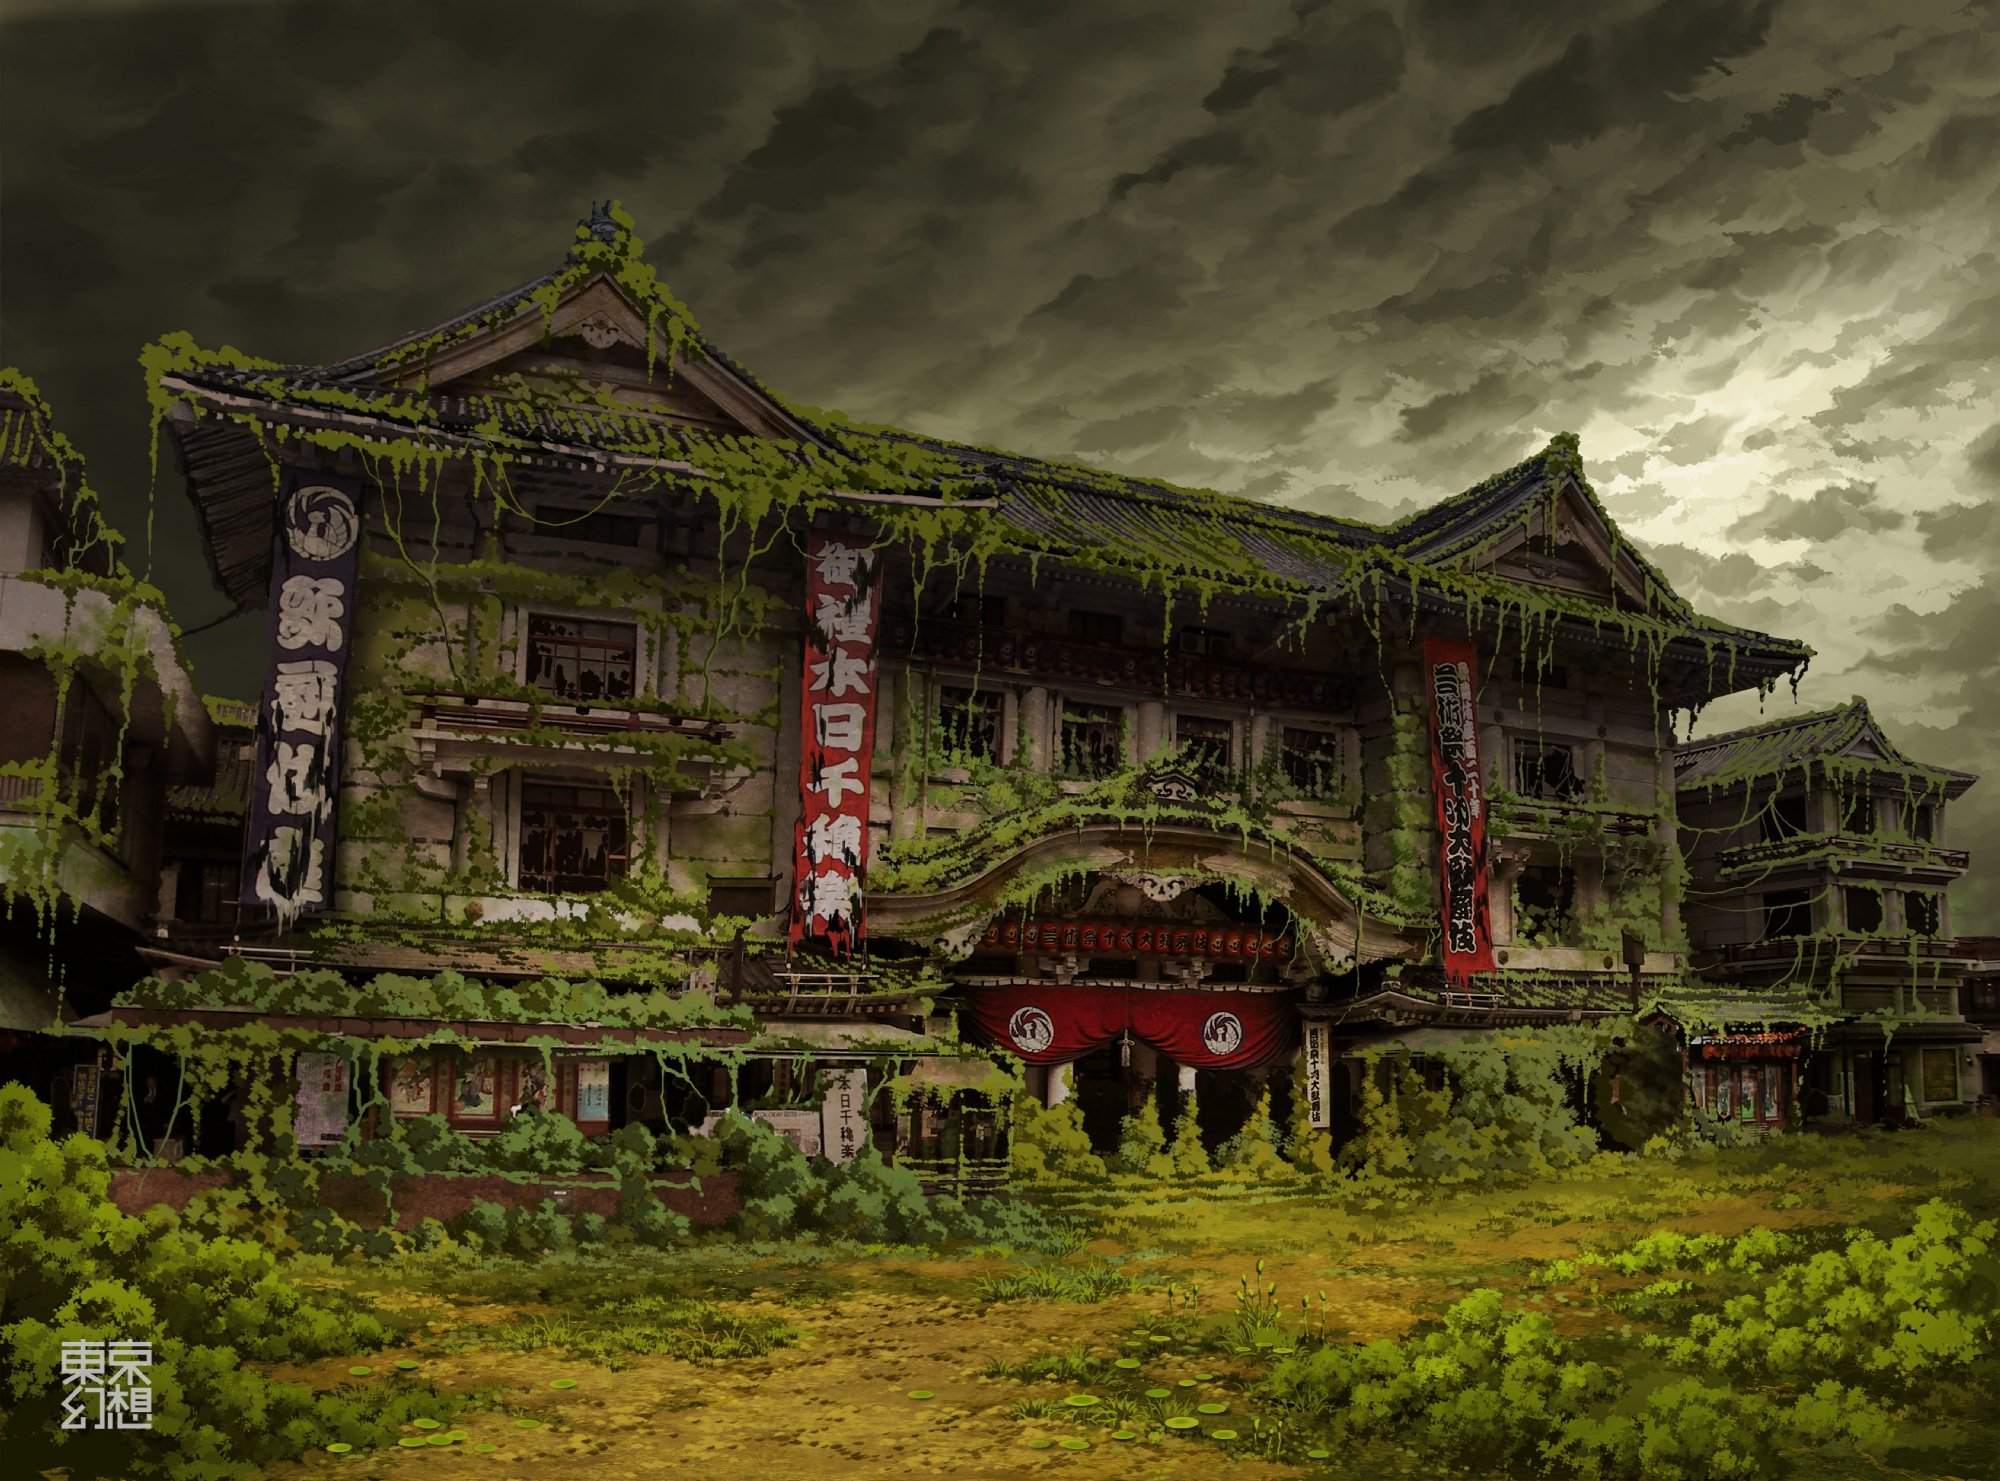 Tokyo ruins post-apocalyptic buildings artwork overcast Asian architecture Ivy theatre abandoned banners TokyoGenso